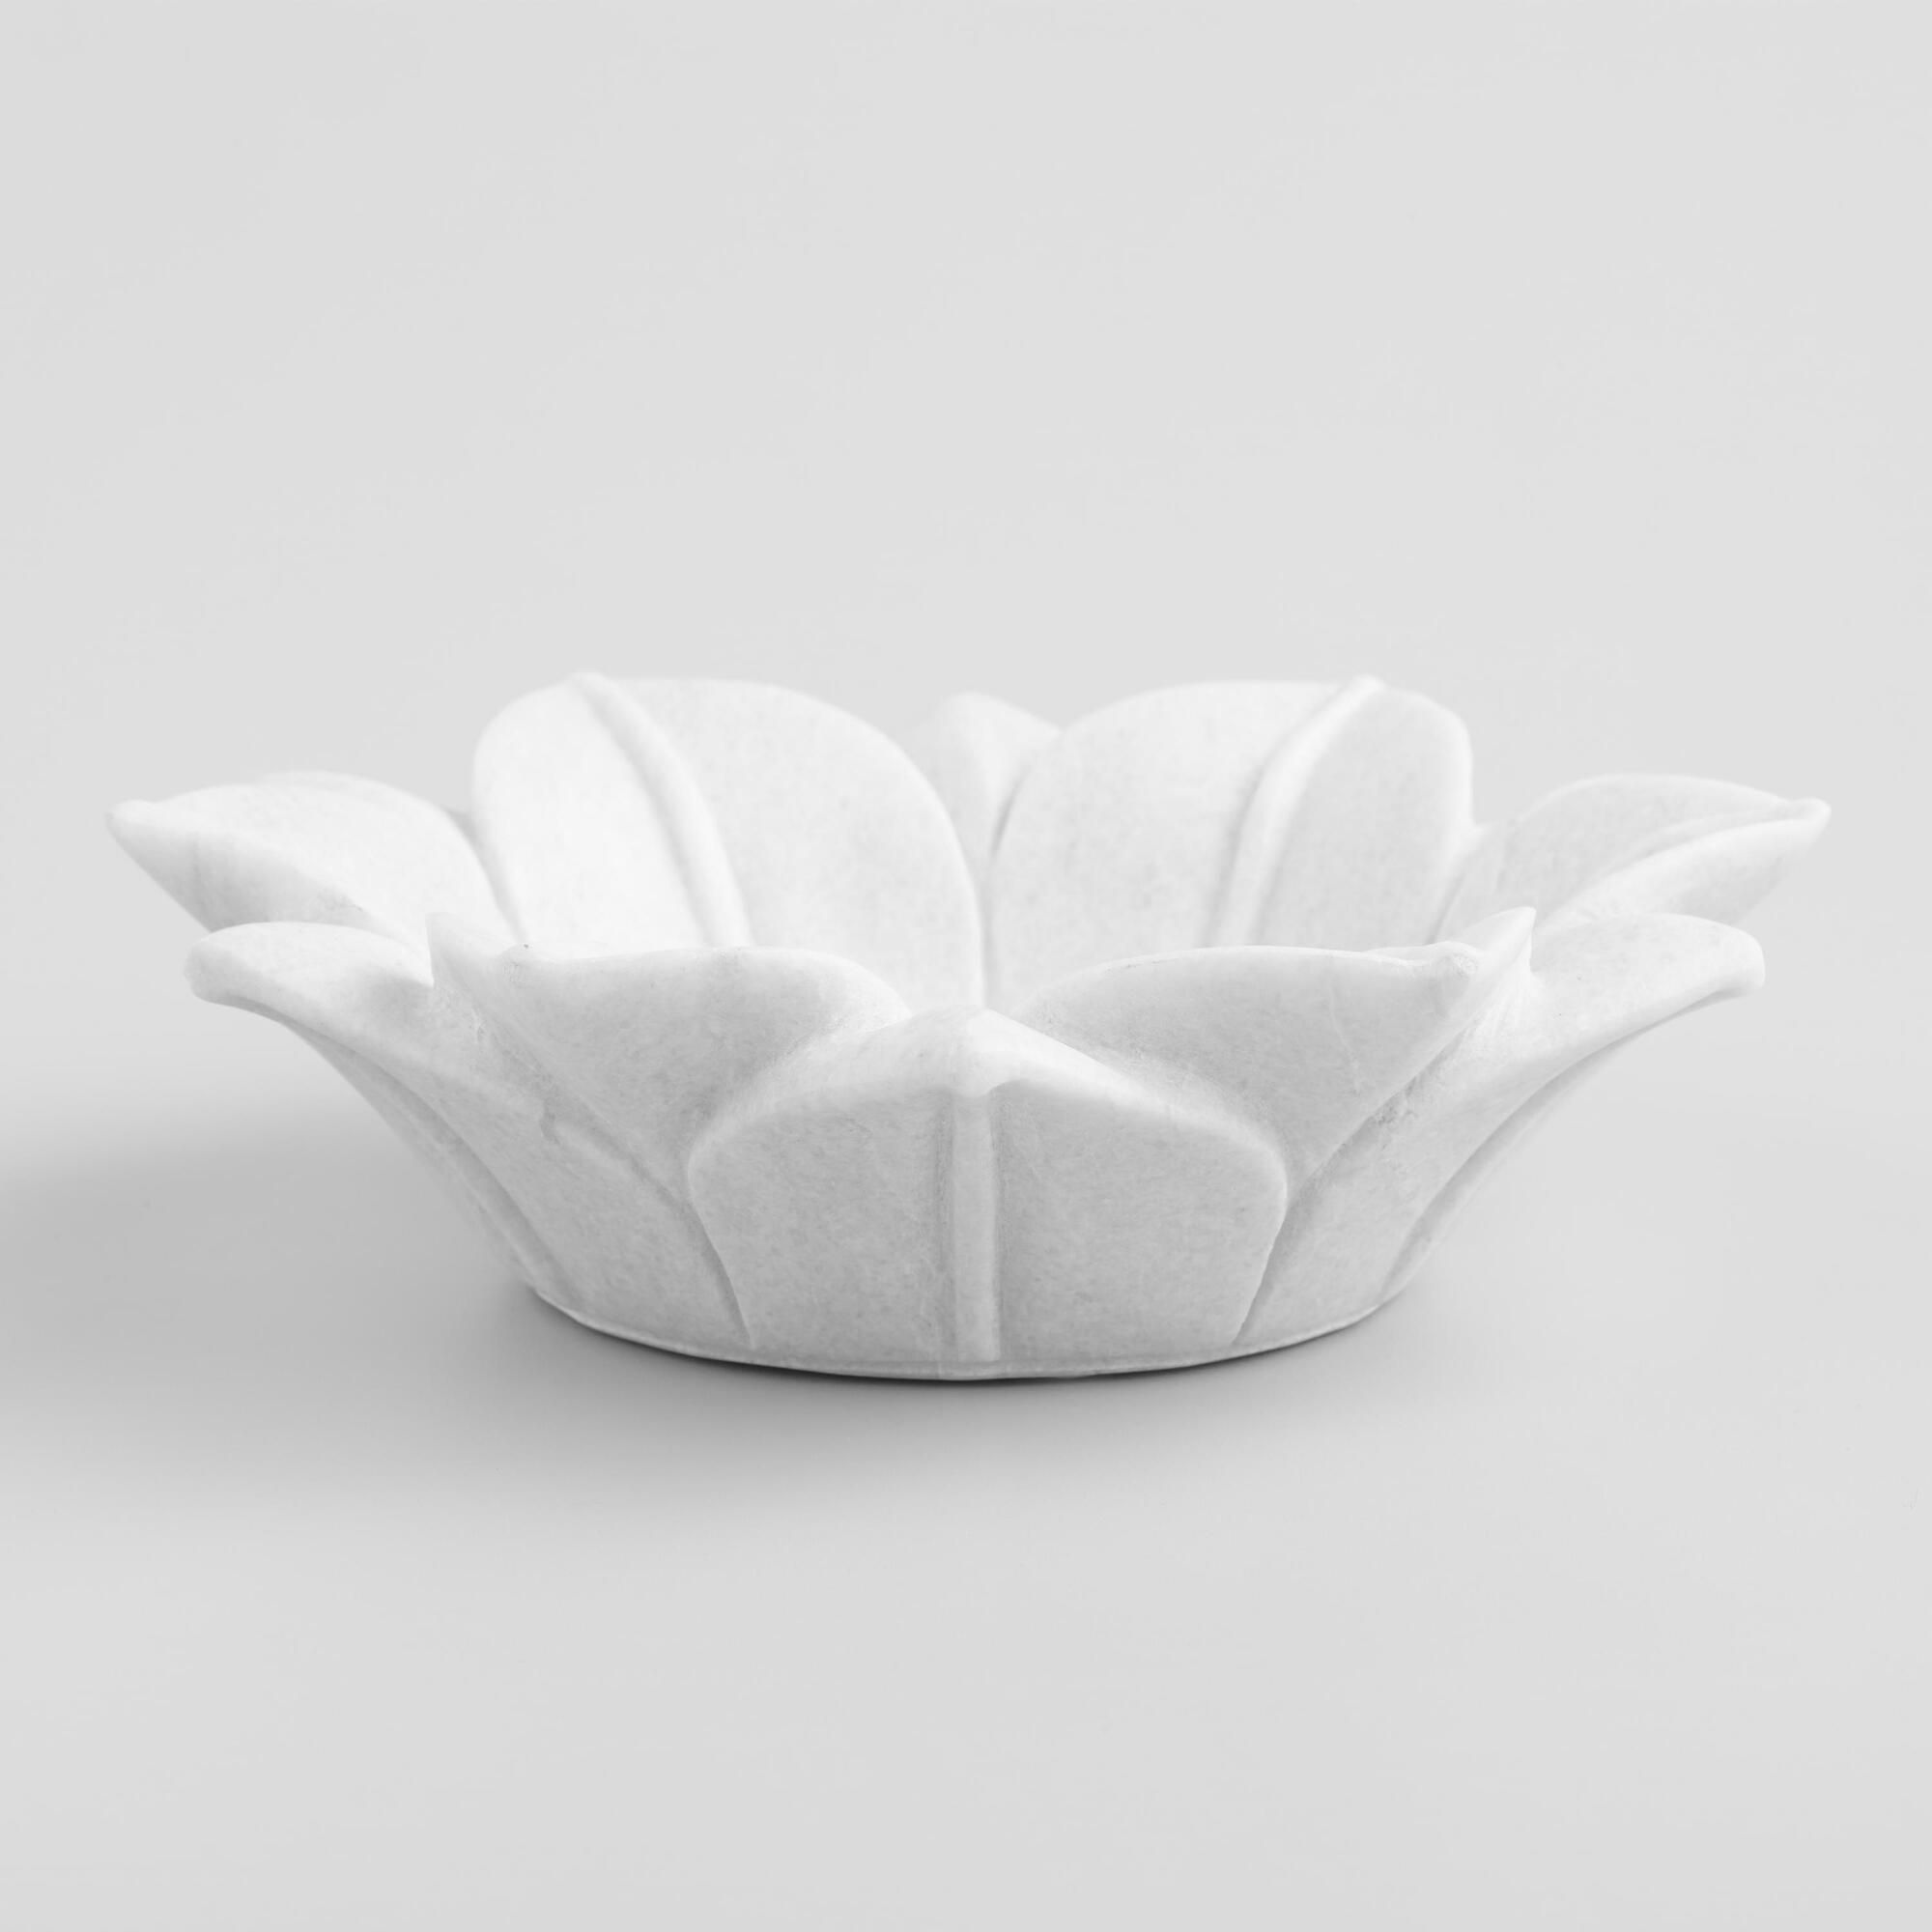 White Marble Lotus Bowl By World Market In 2020 Lotus Bowls Handmade Bowl White Marble